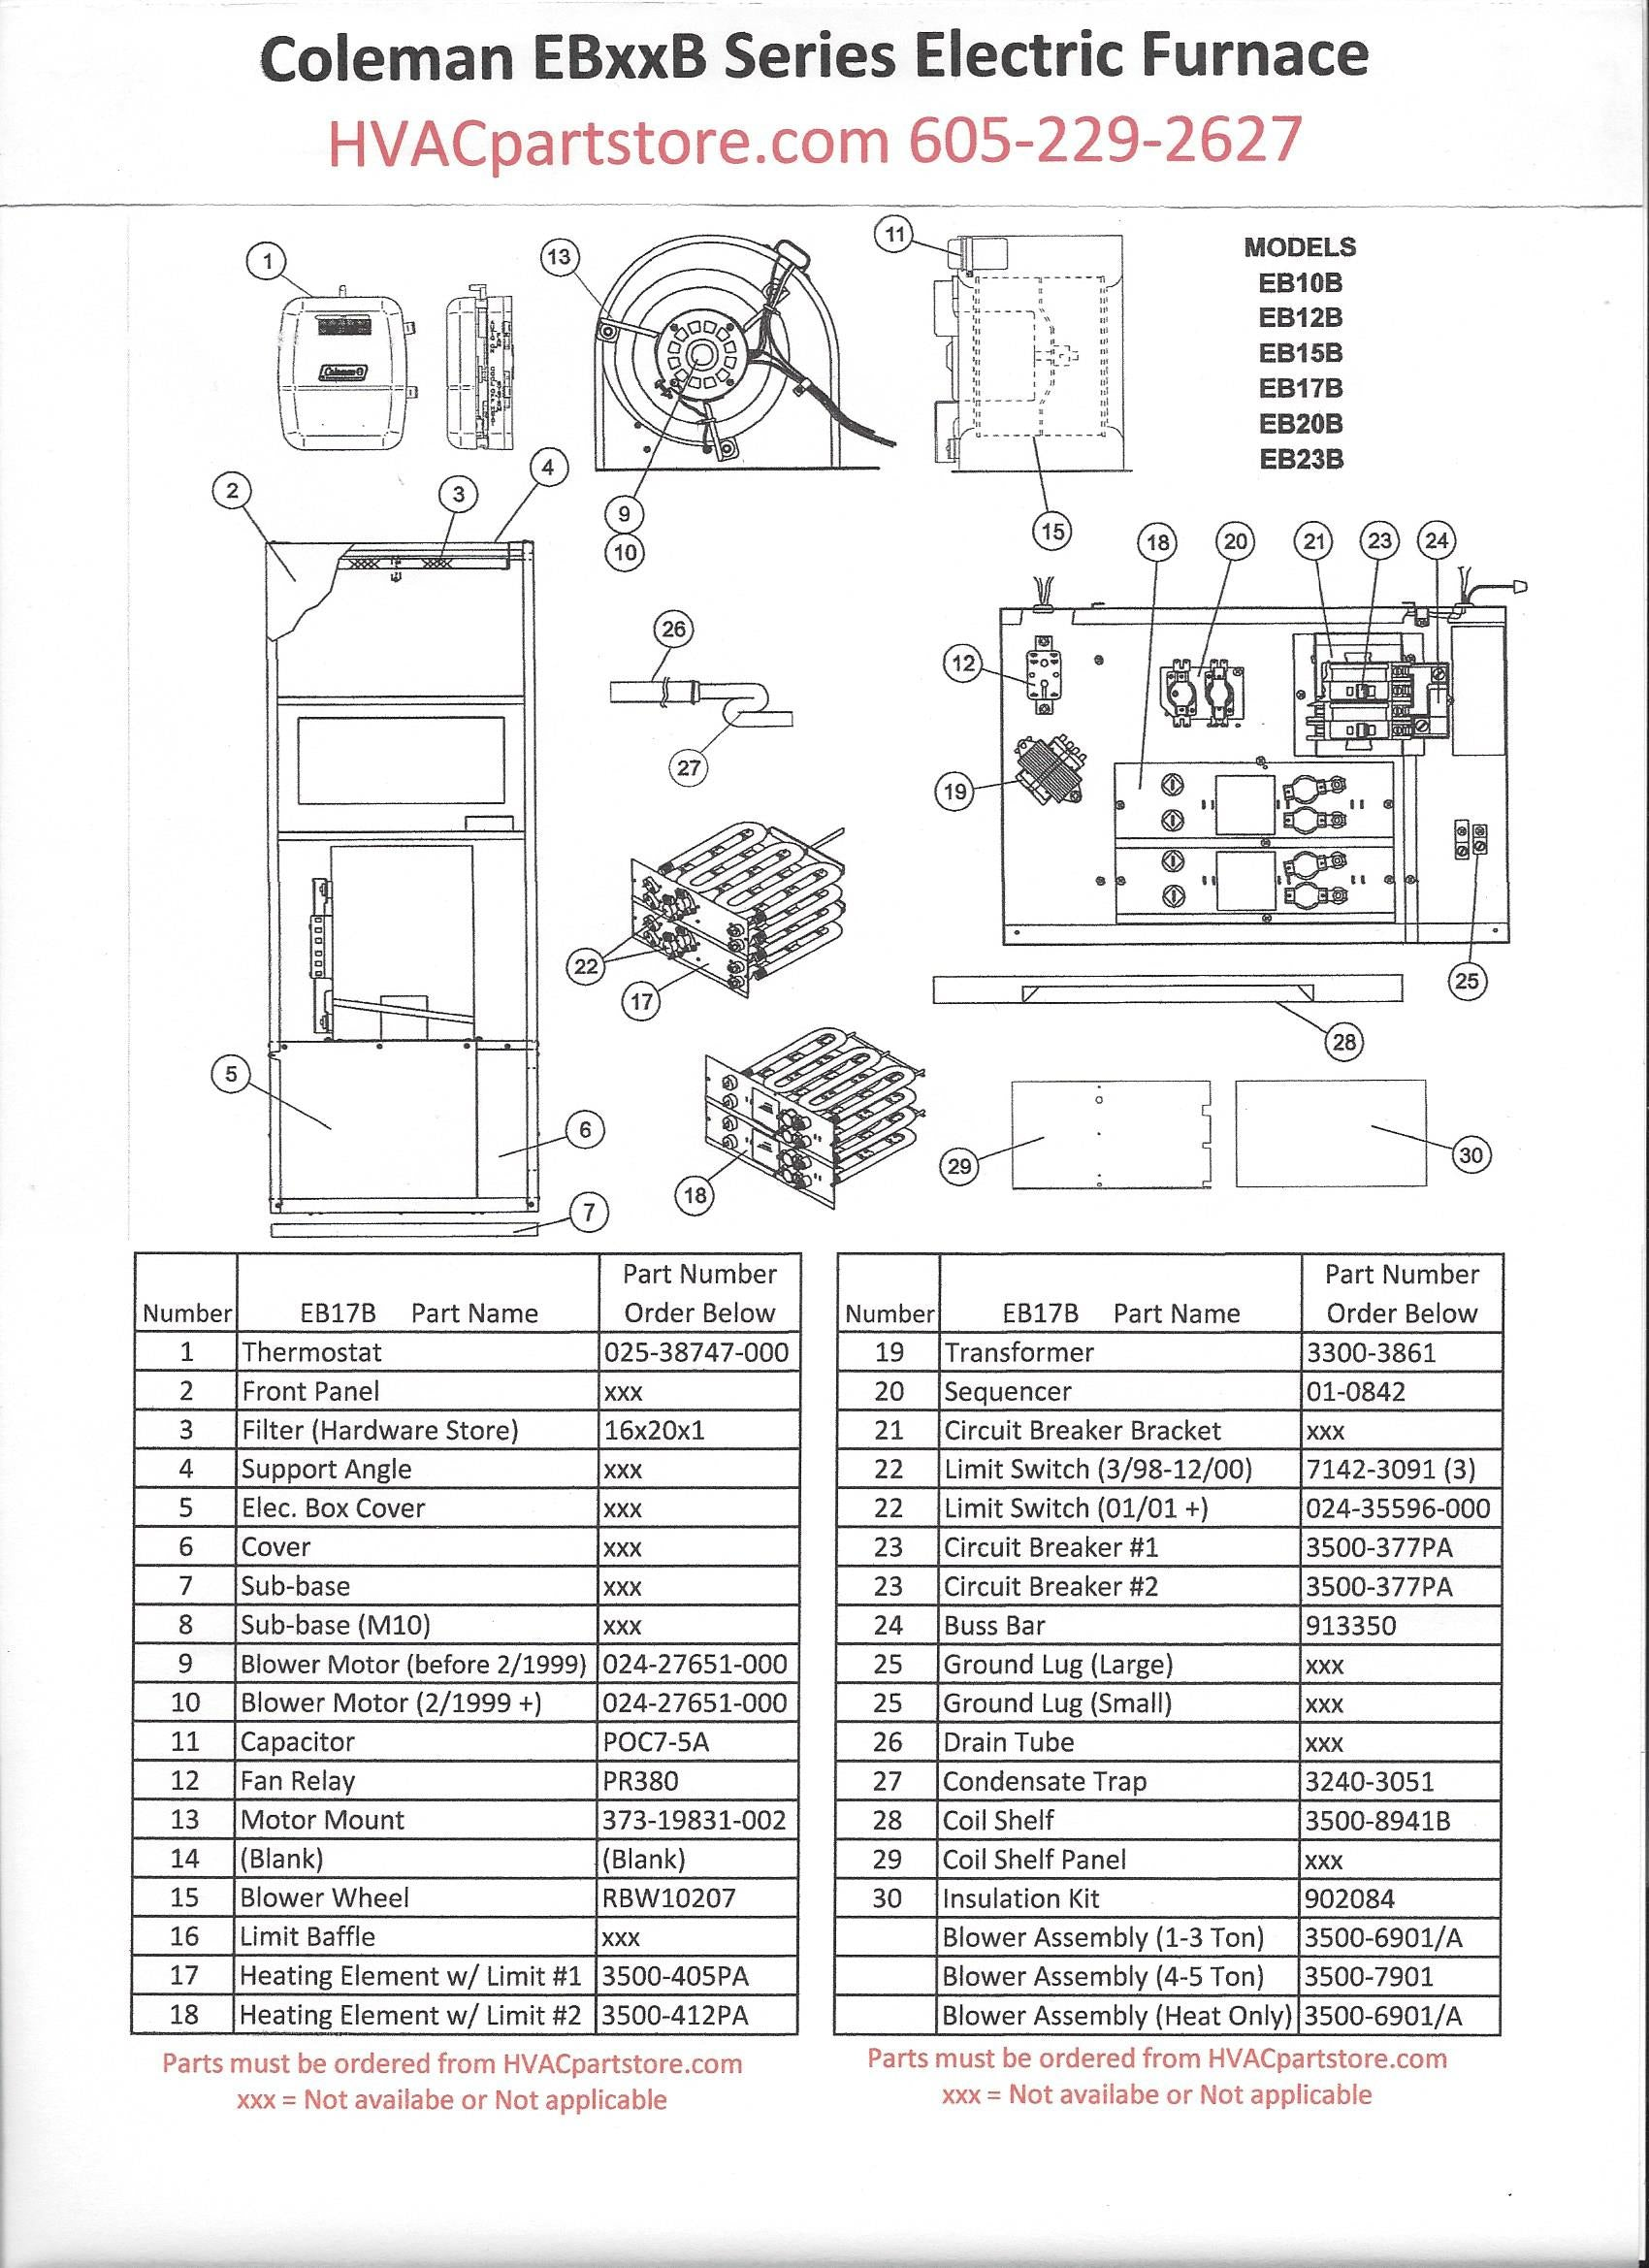 Rheem Gas Heater Wiring Diagram besides Singer Gas Furnace Diagram likewise Lennox 21j7201 Wiring Diagram likewise Aquastarparts likewise Nordyne E2eb 012ha Wiring Diagram. on rheem thermostat wiring diagram